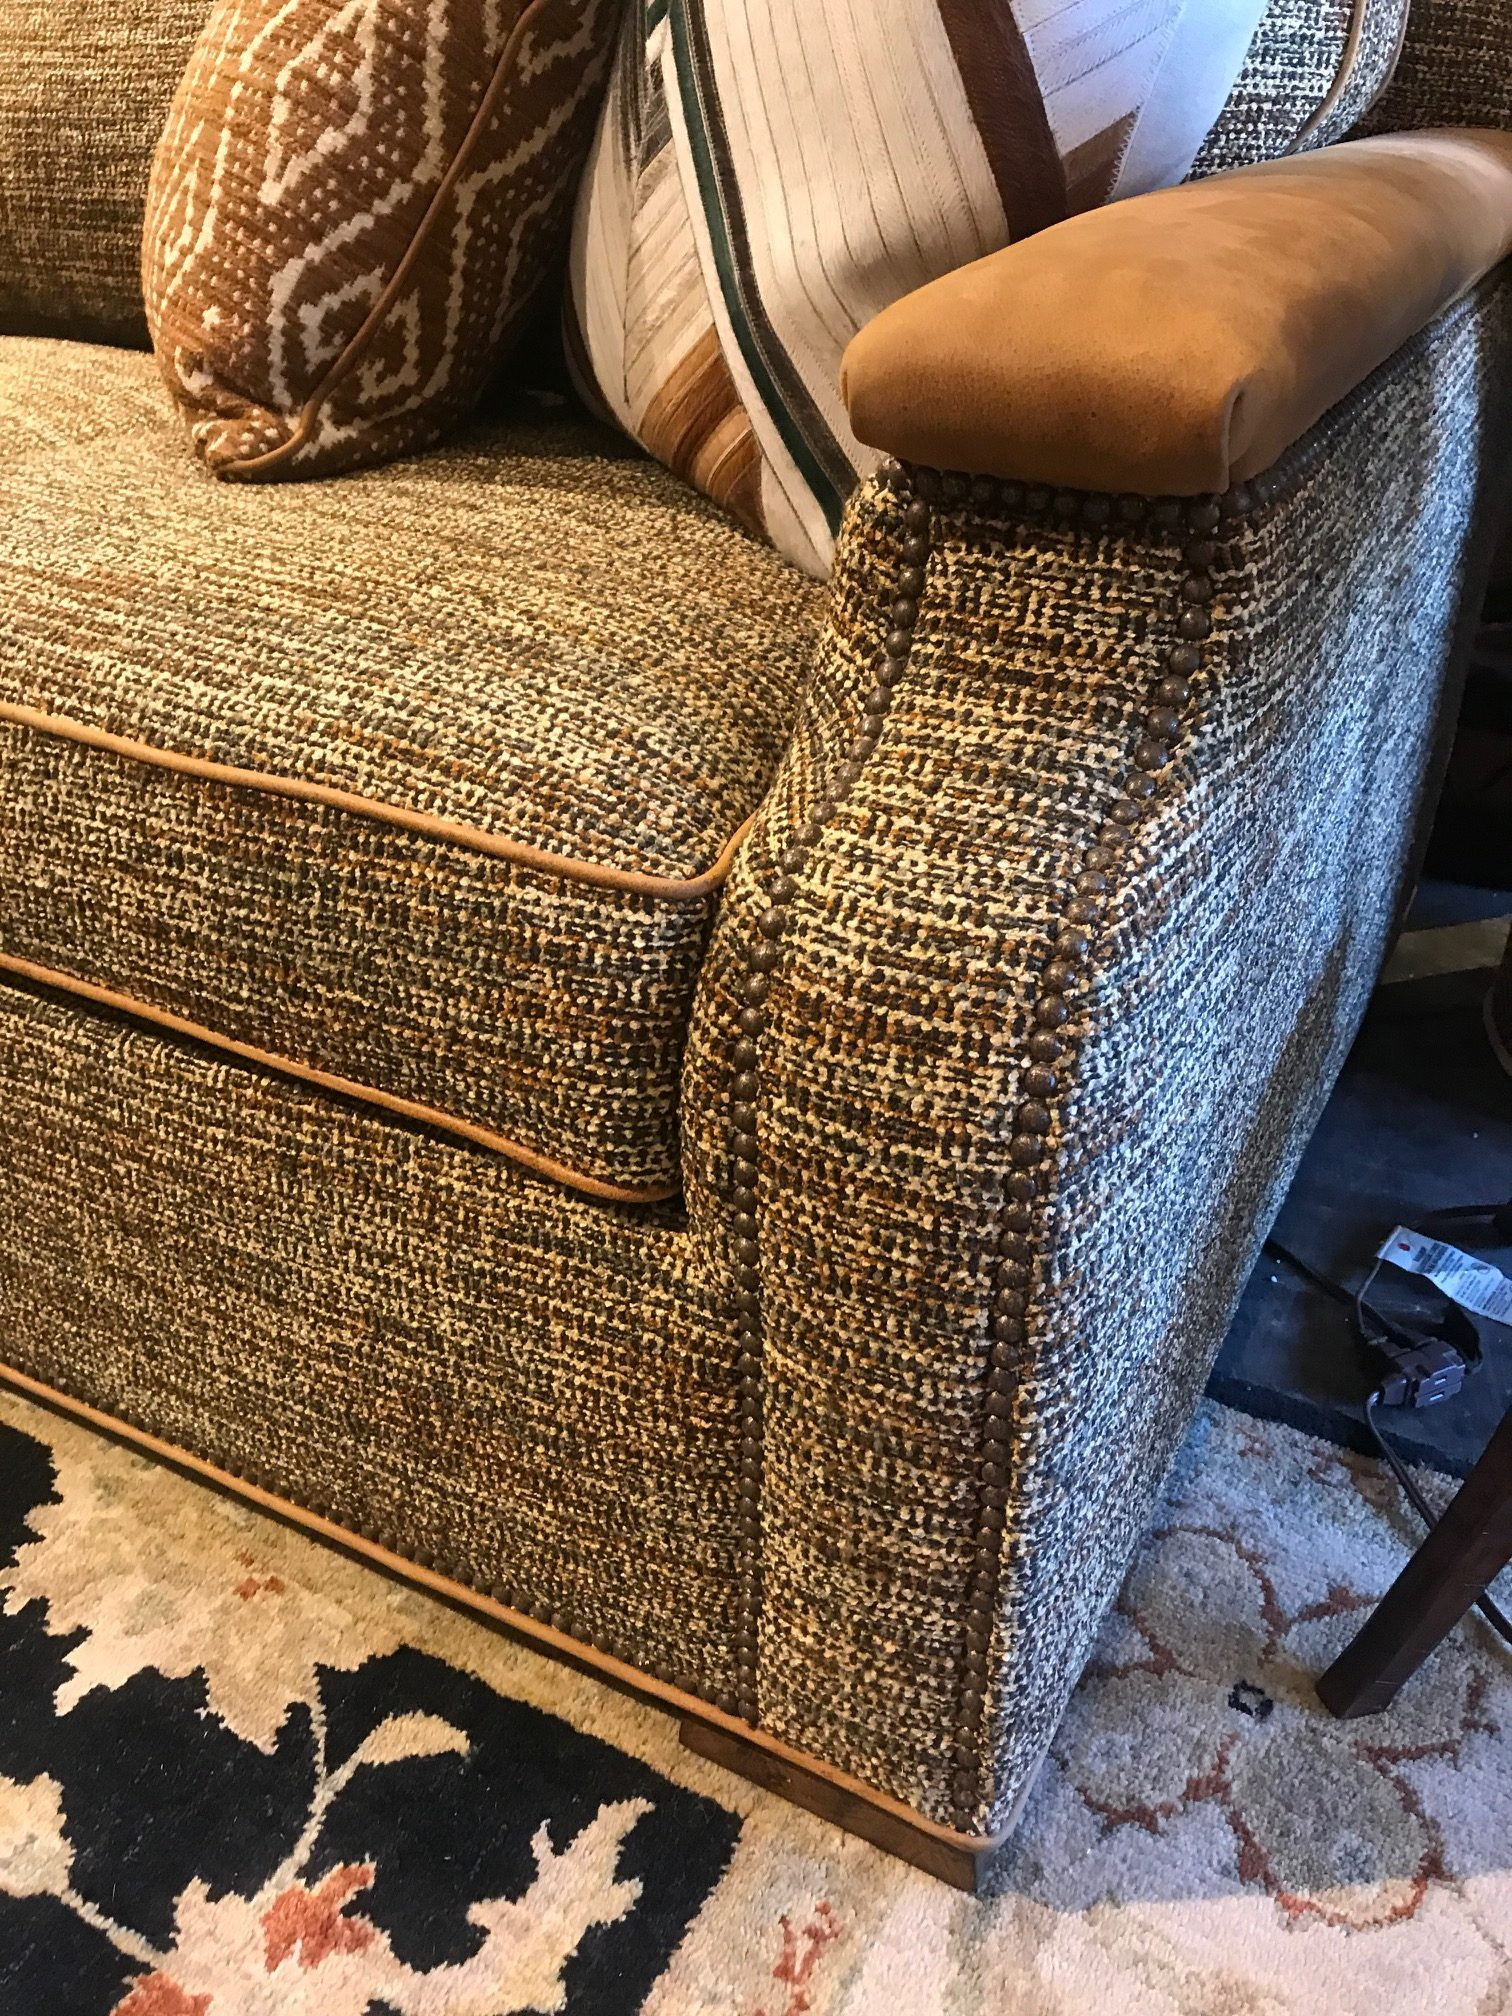 Tweed Sofa With Leather Accents At Anteks Furniture Store